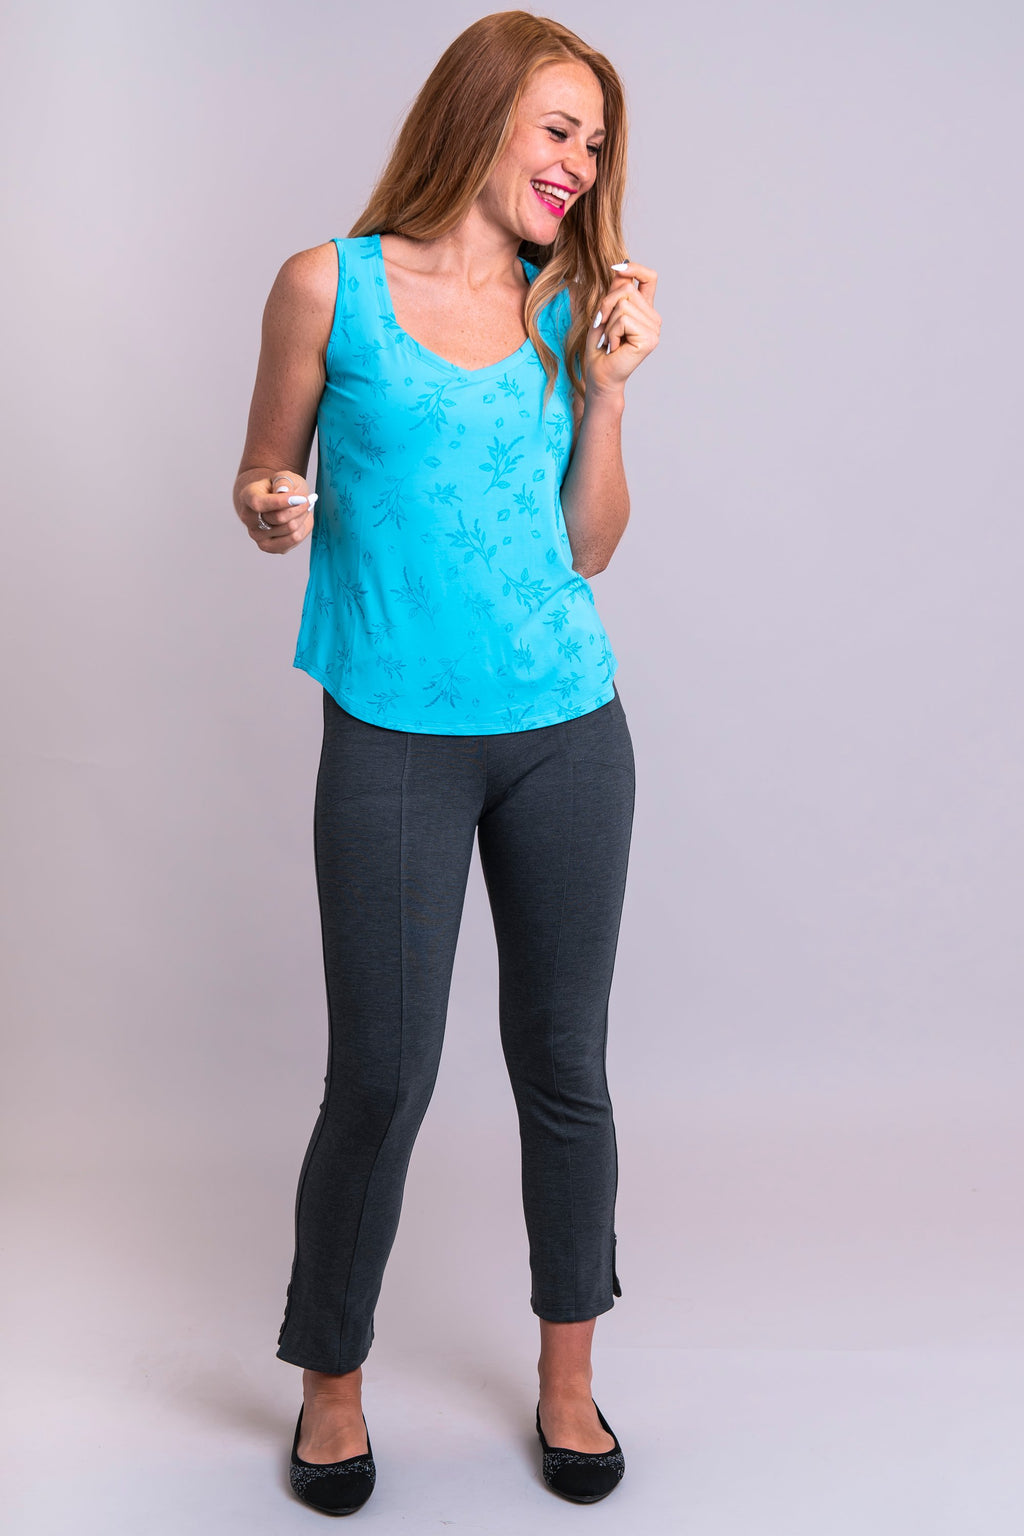 Ritzy Tank, Aqua Grains, Bamboo - Blue Sky Clothing Co